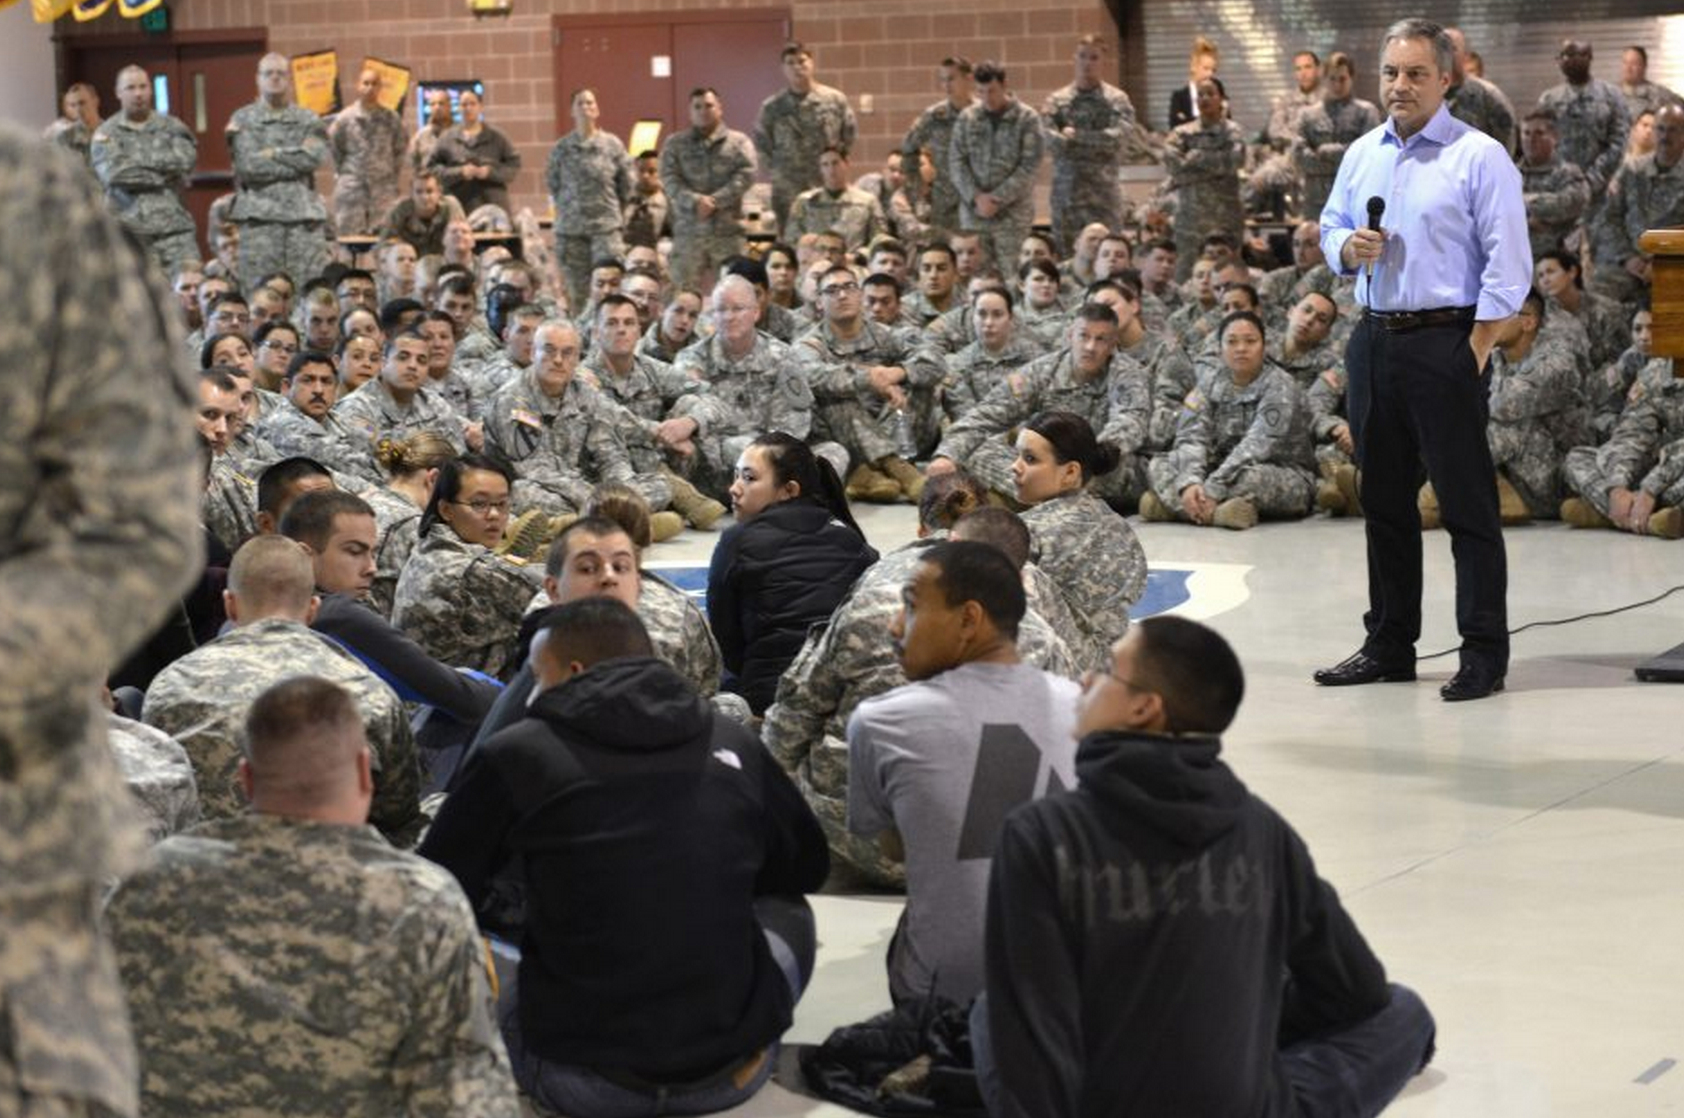 Gov. Sean Parnell holds a closed-door session with Alaska National Guard members Oct. 19 at Joint Base Elmendorf-Richardson in Anchorage. Colonels, generals and reporters were not allowed into the meeting. (Photo courtesy of Sharon Leighow/Office of the Governor)